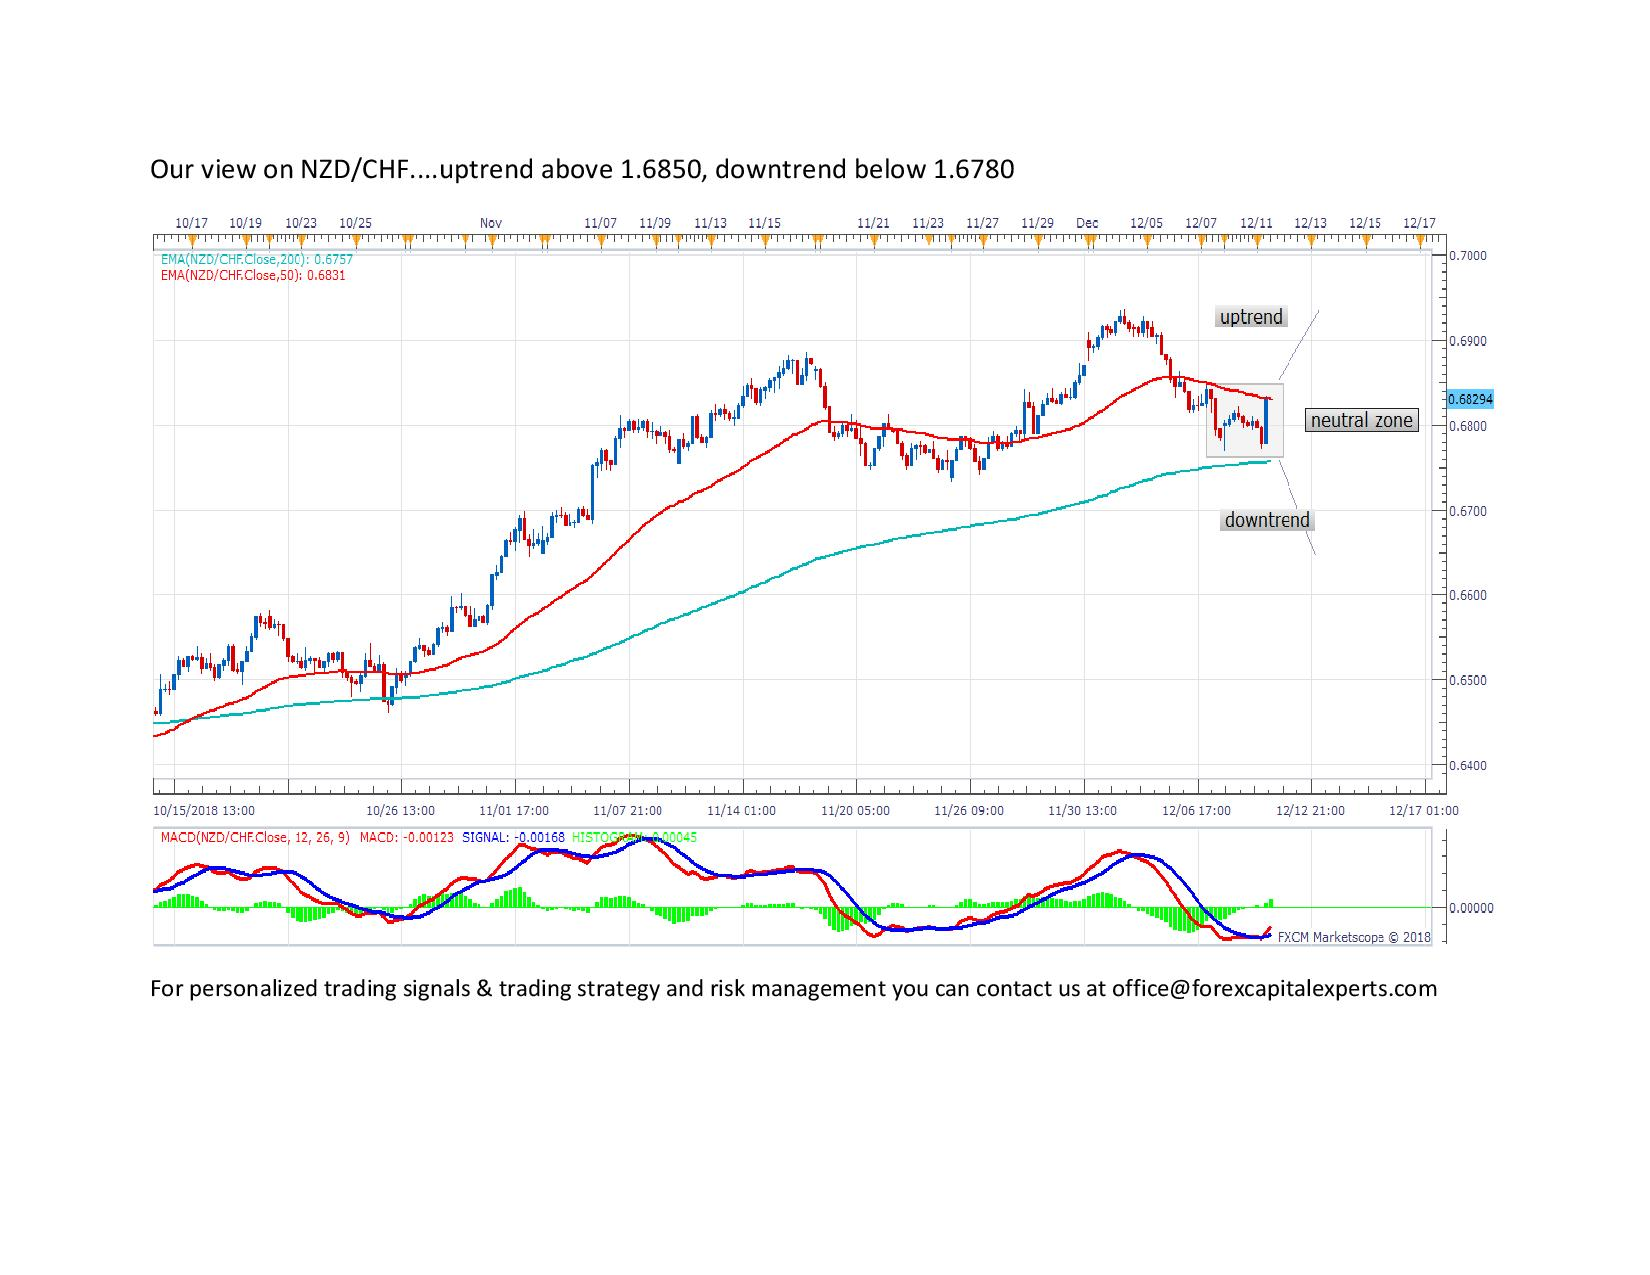 Our view on NZDCHF page 0011